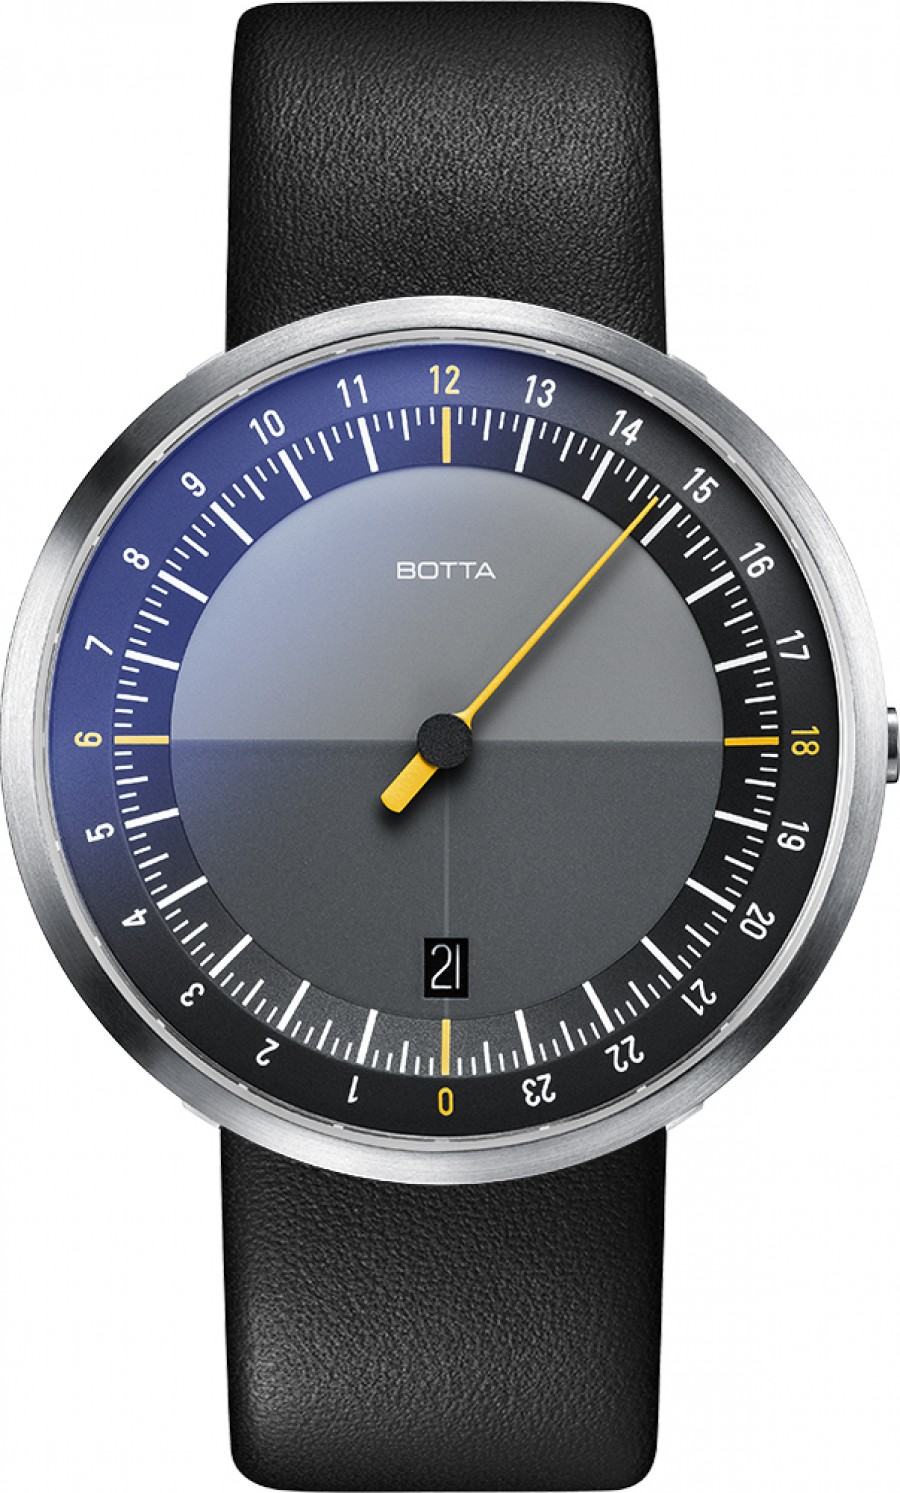 Botta Design uno24 229010 quartz 40mm